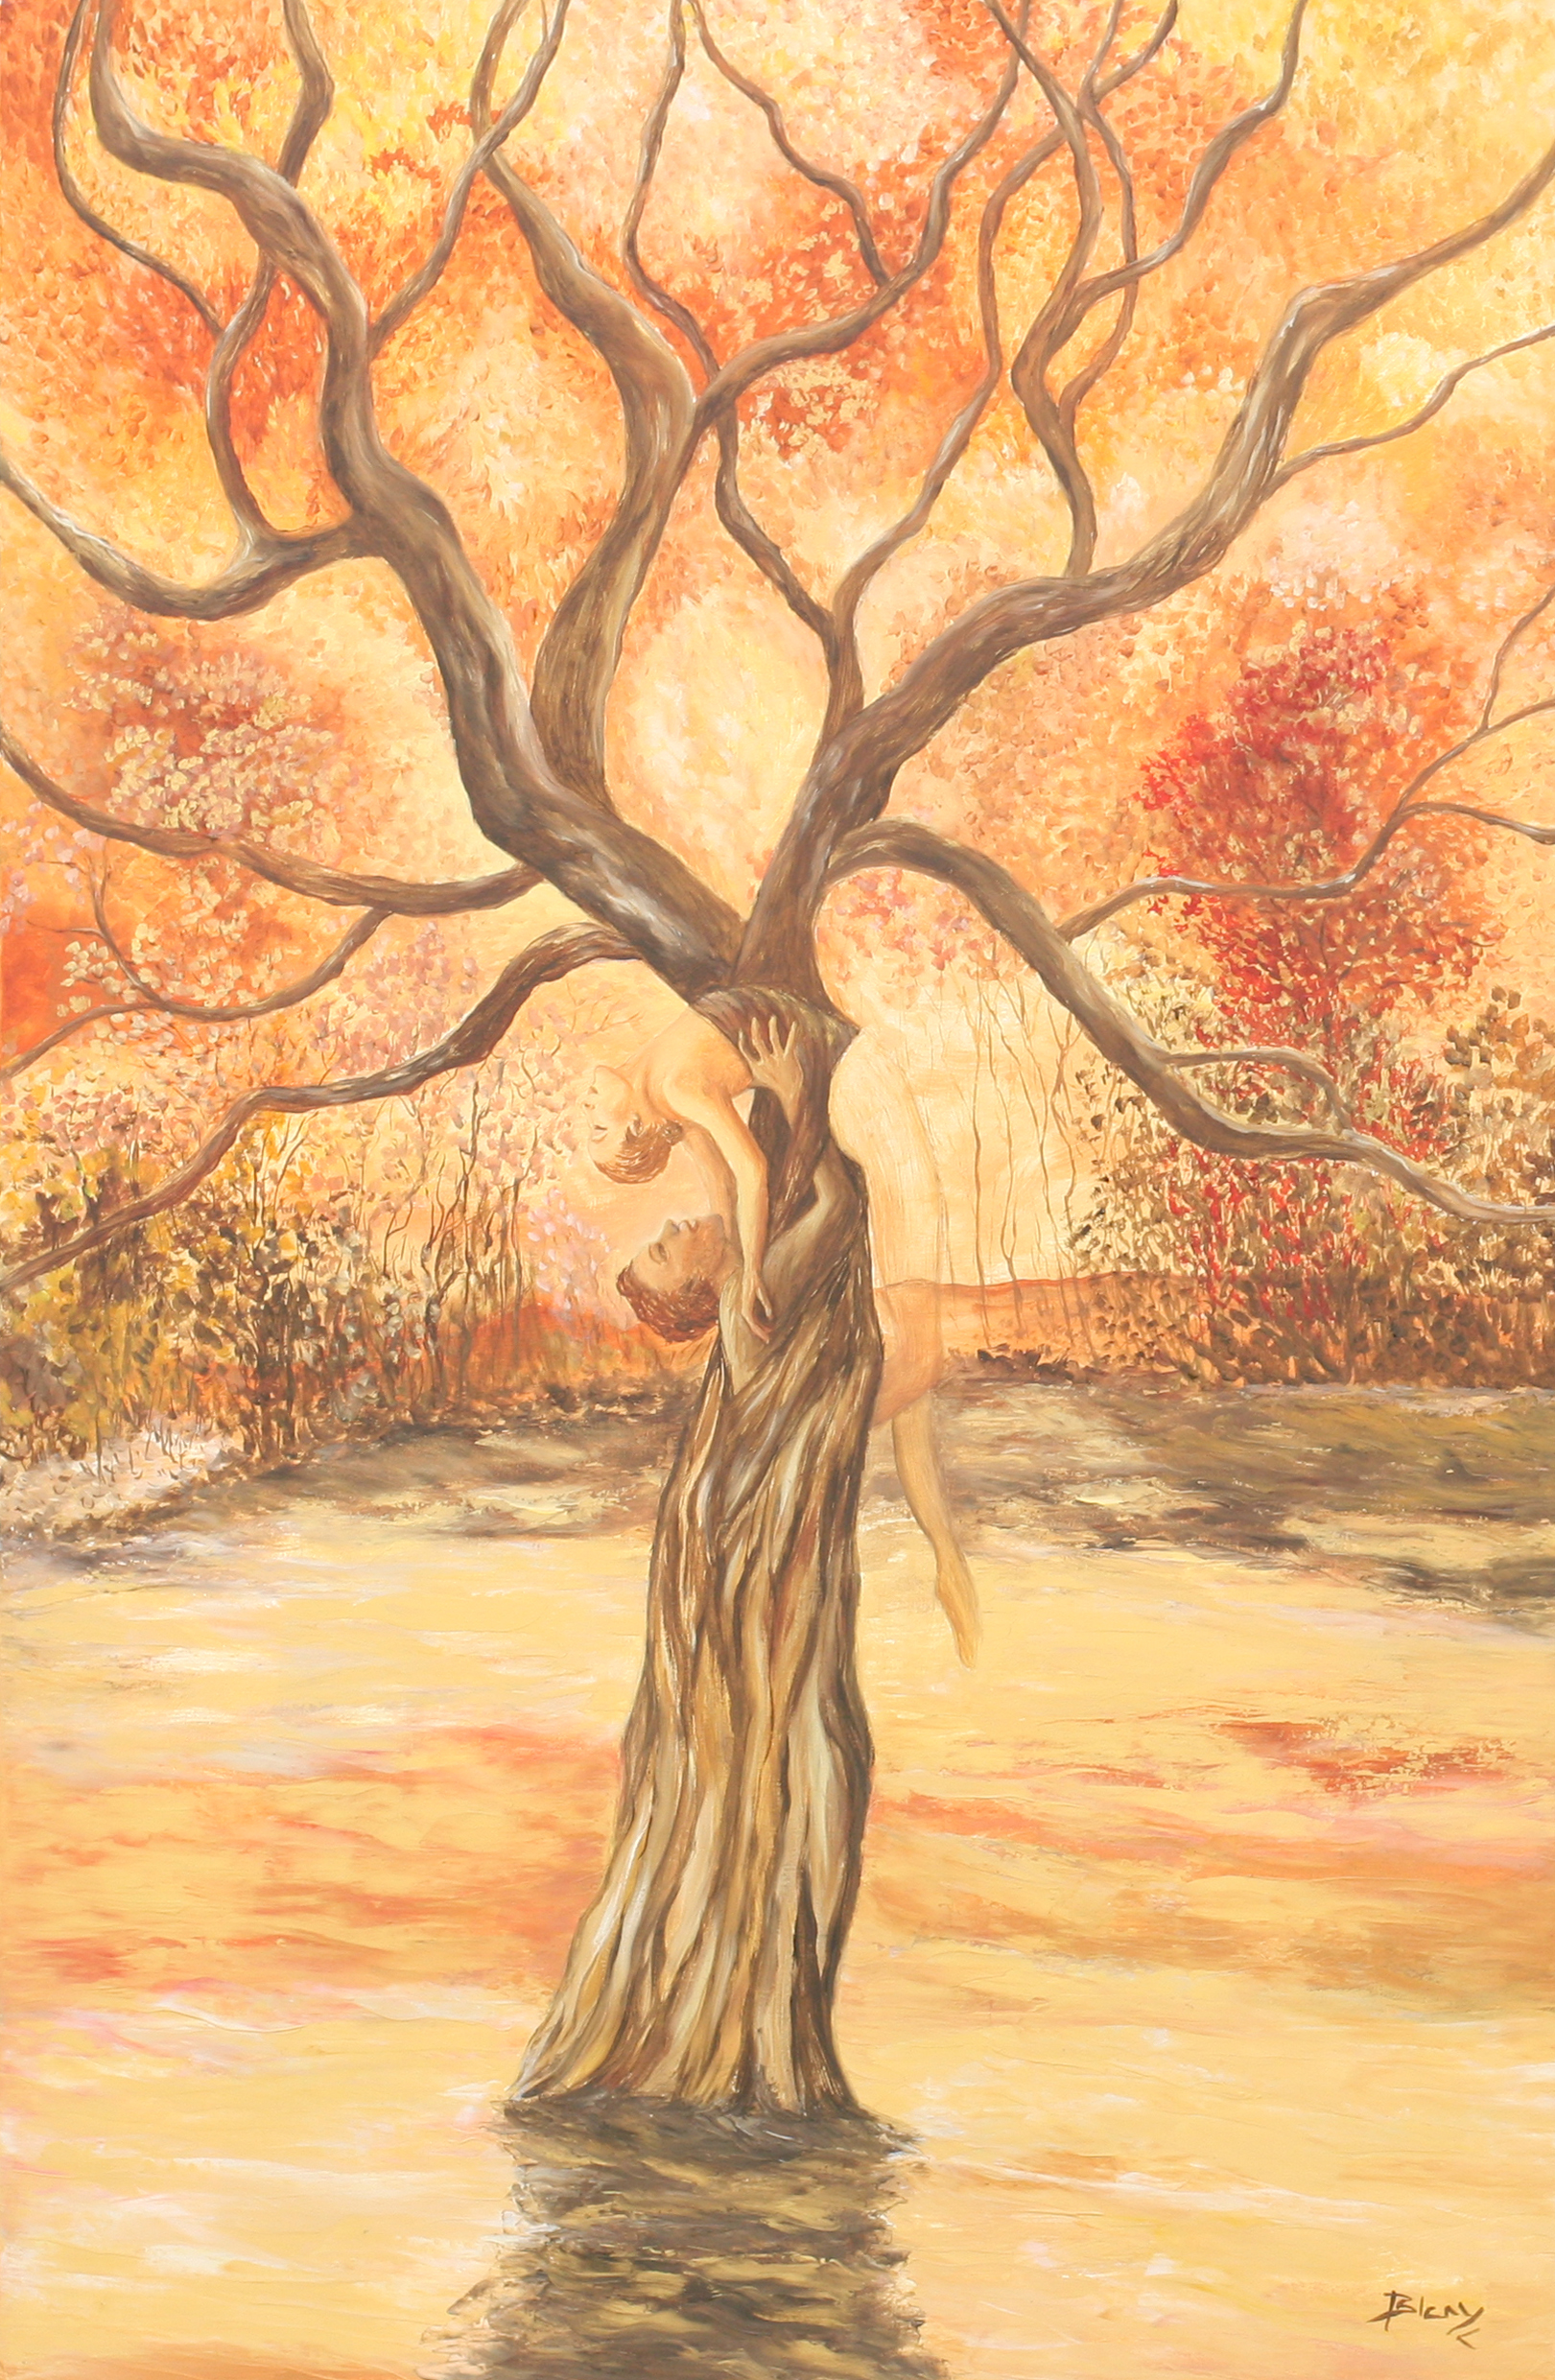 Loving tree - sold